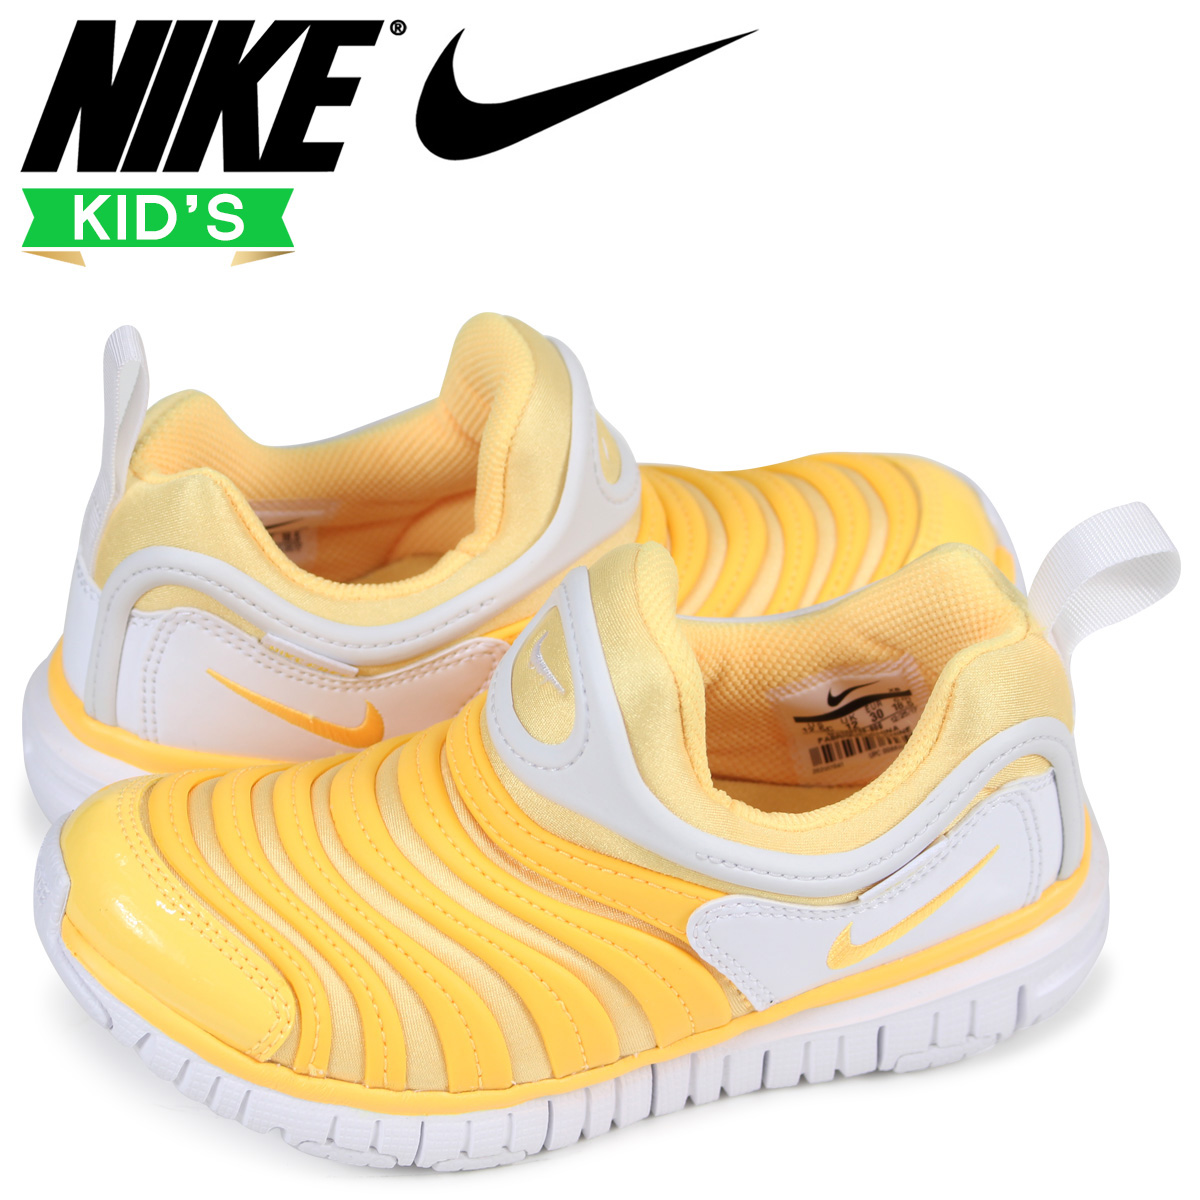 sneak online shop nike nike dynamo free kids sneakers dynamo free ps 343 738 806 yellow 3 23. Black Bedroom Furniture Sets. Home Design Ideas